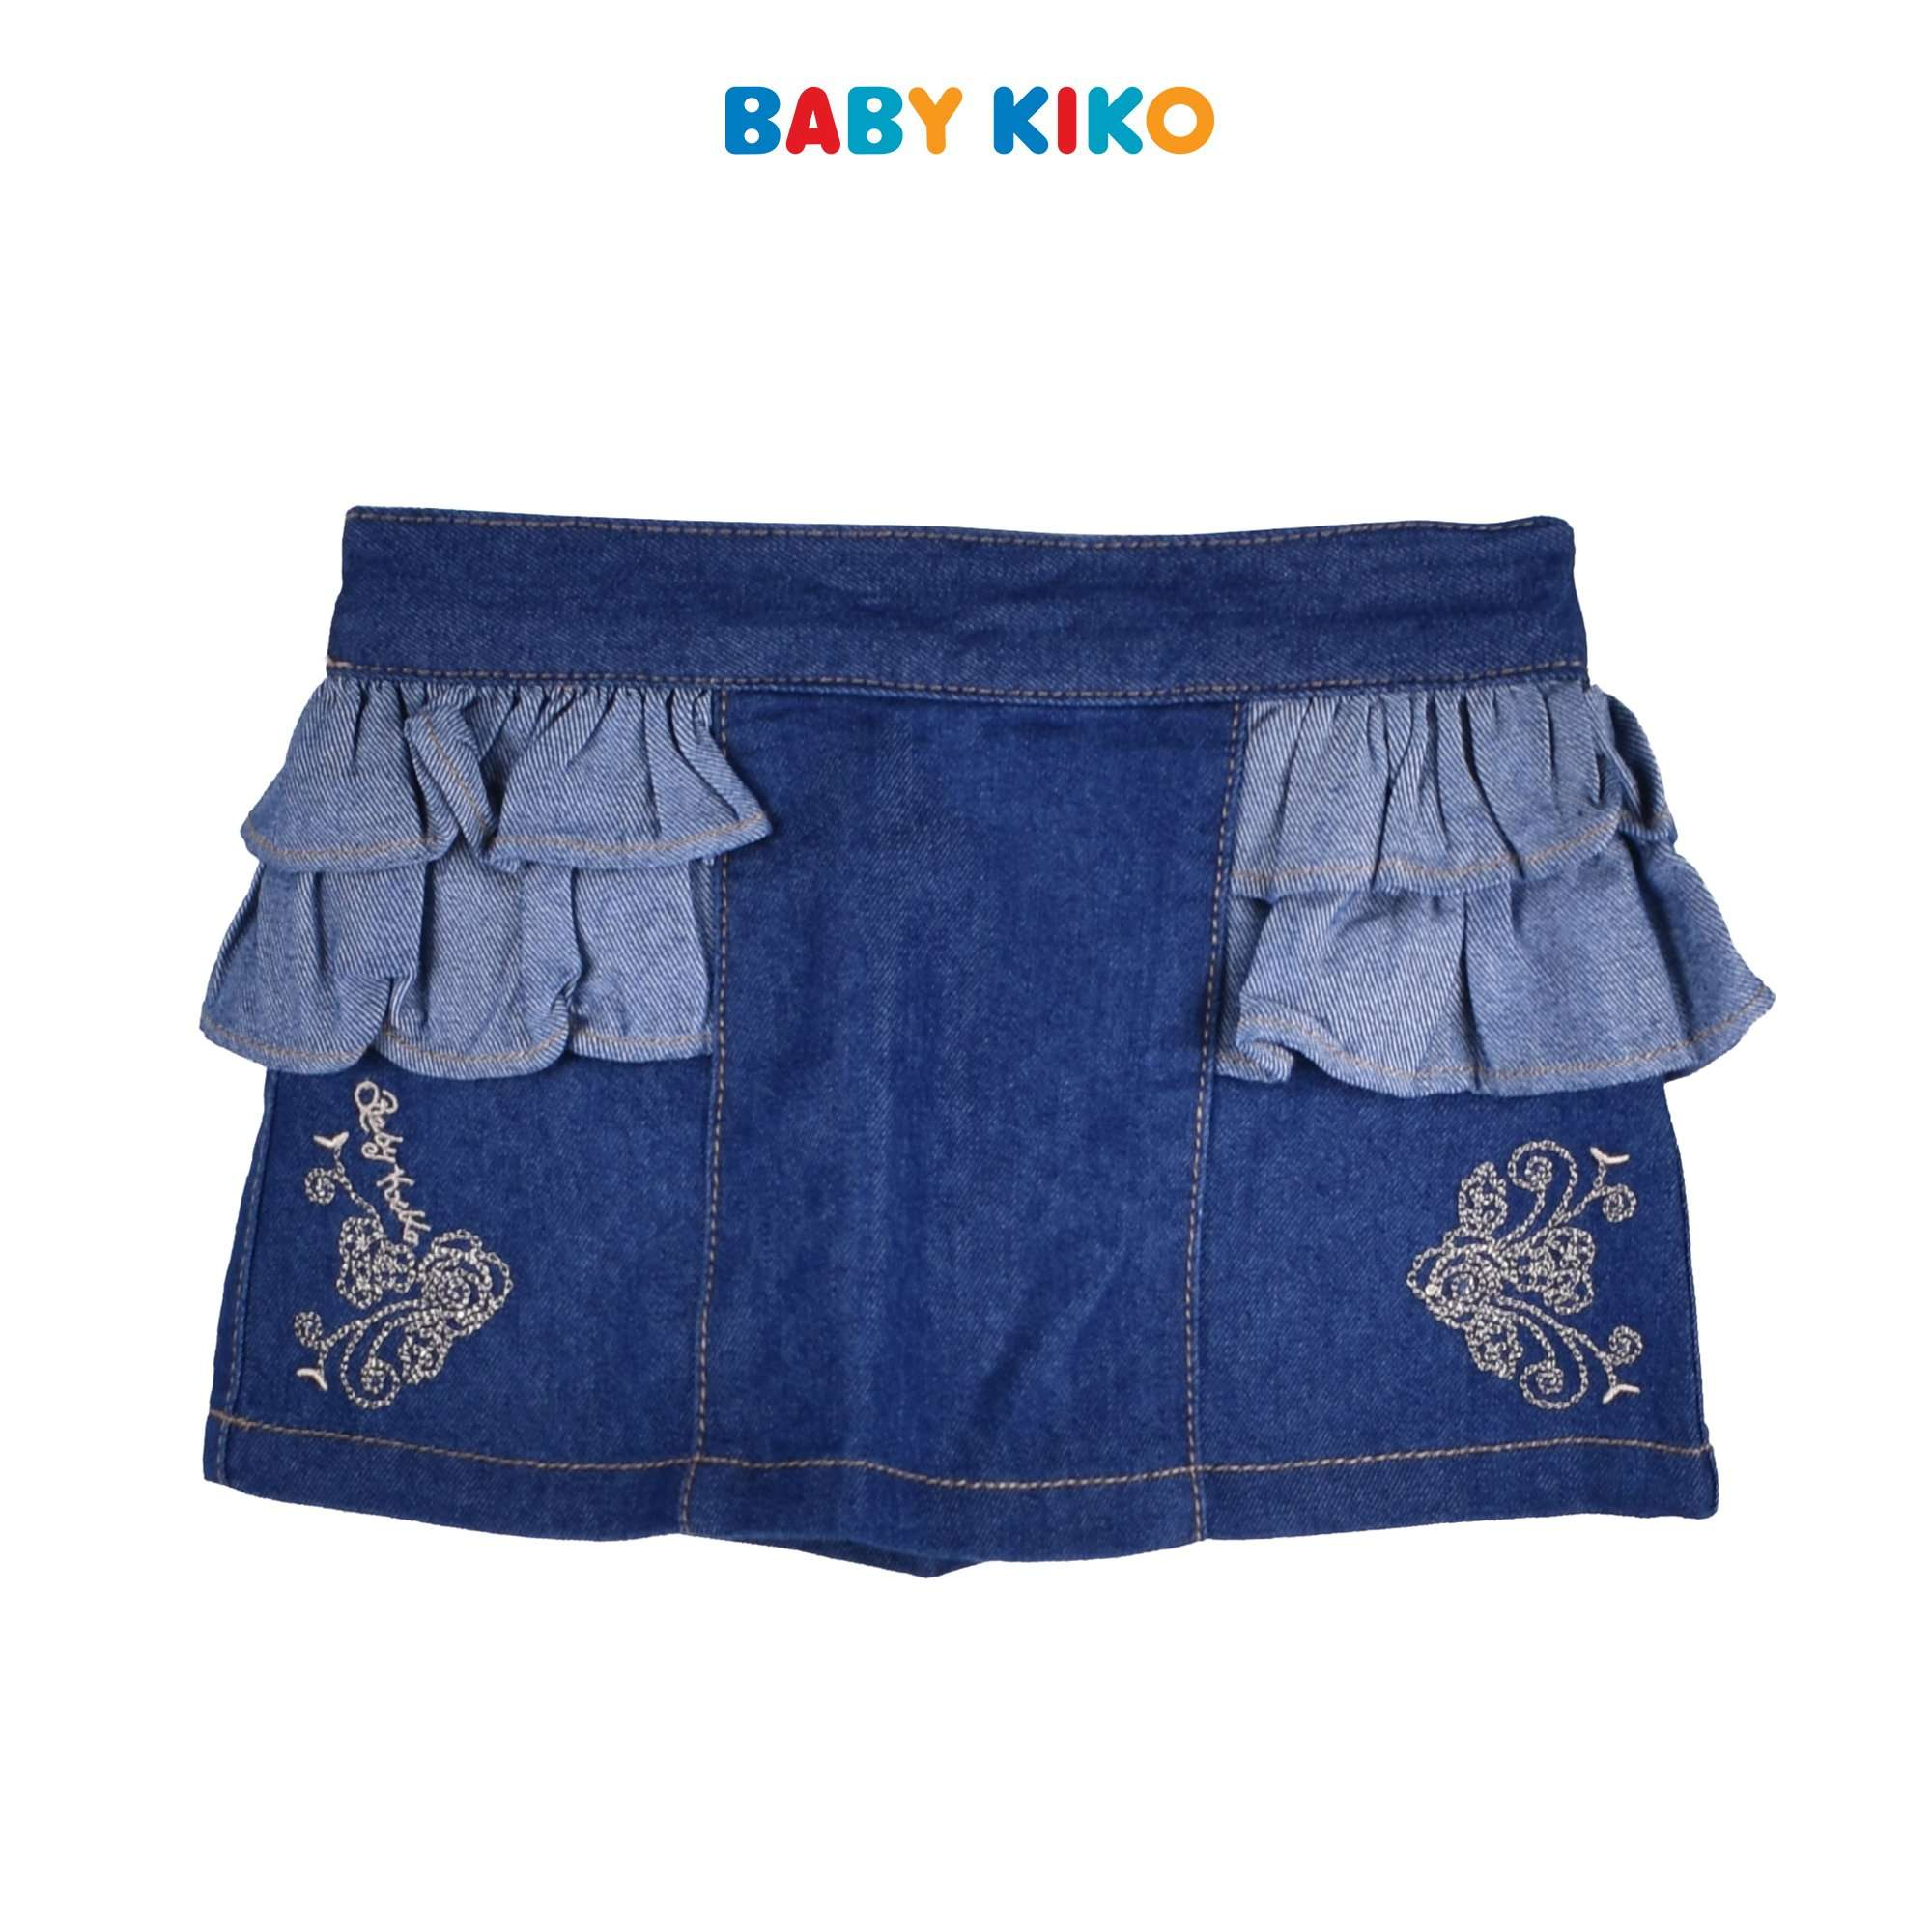 Baby KIKO Baby Girl Denim Skirt With Panty - Denim Blu 330058-221 : Buy Baby KIKO online at CMG.MY